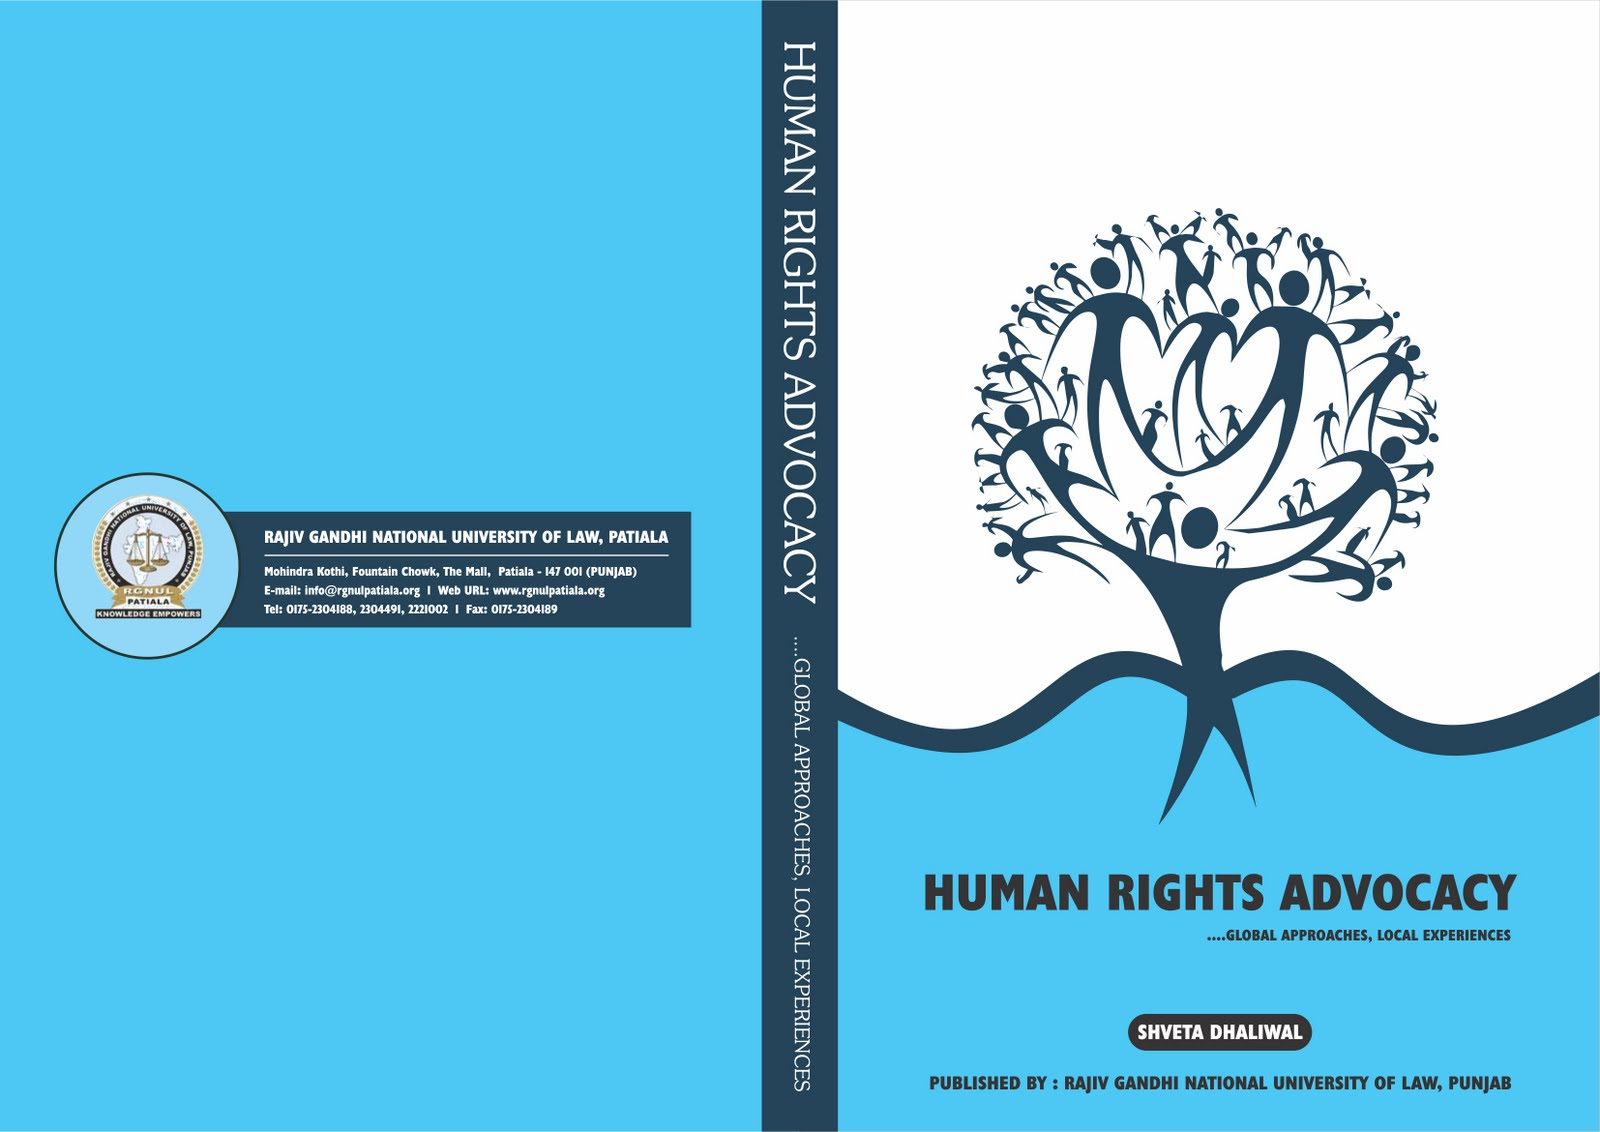 Book Cover Graphism ~ Tarun kumar graphic designer human right book cover